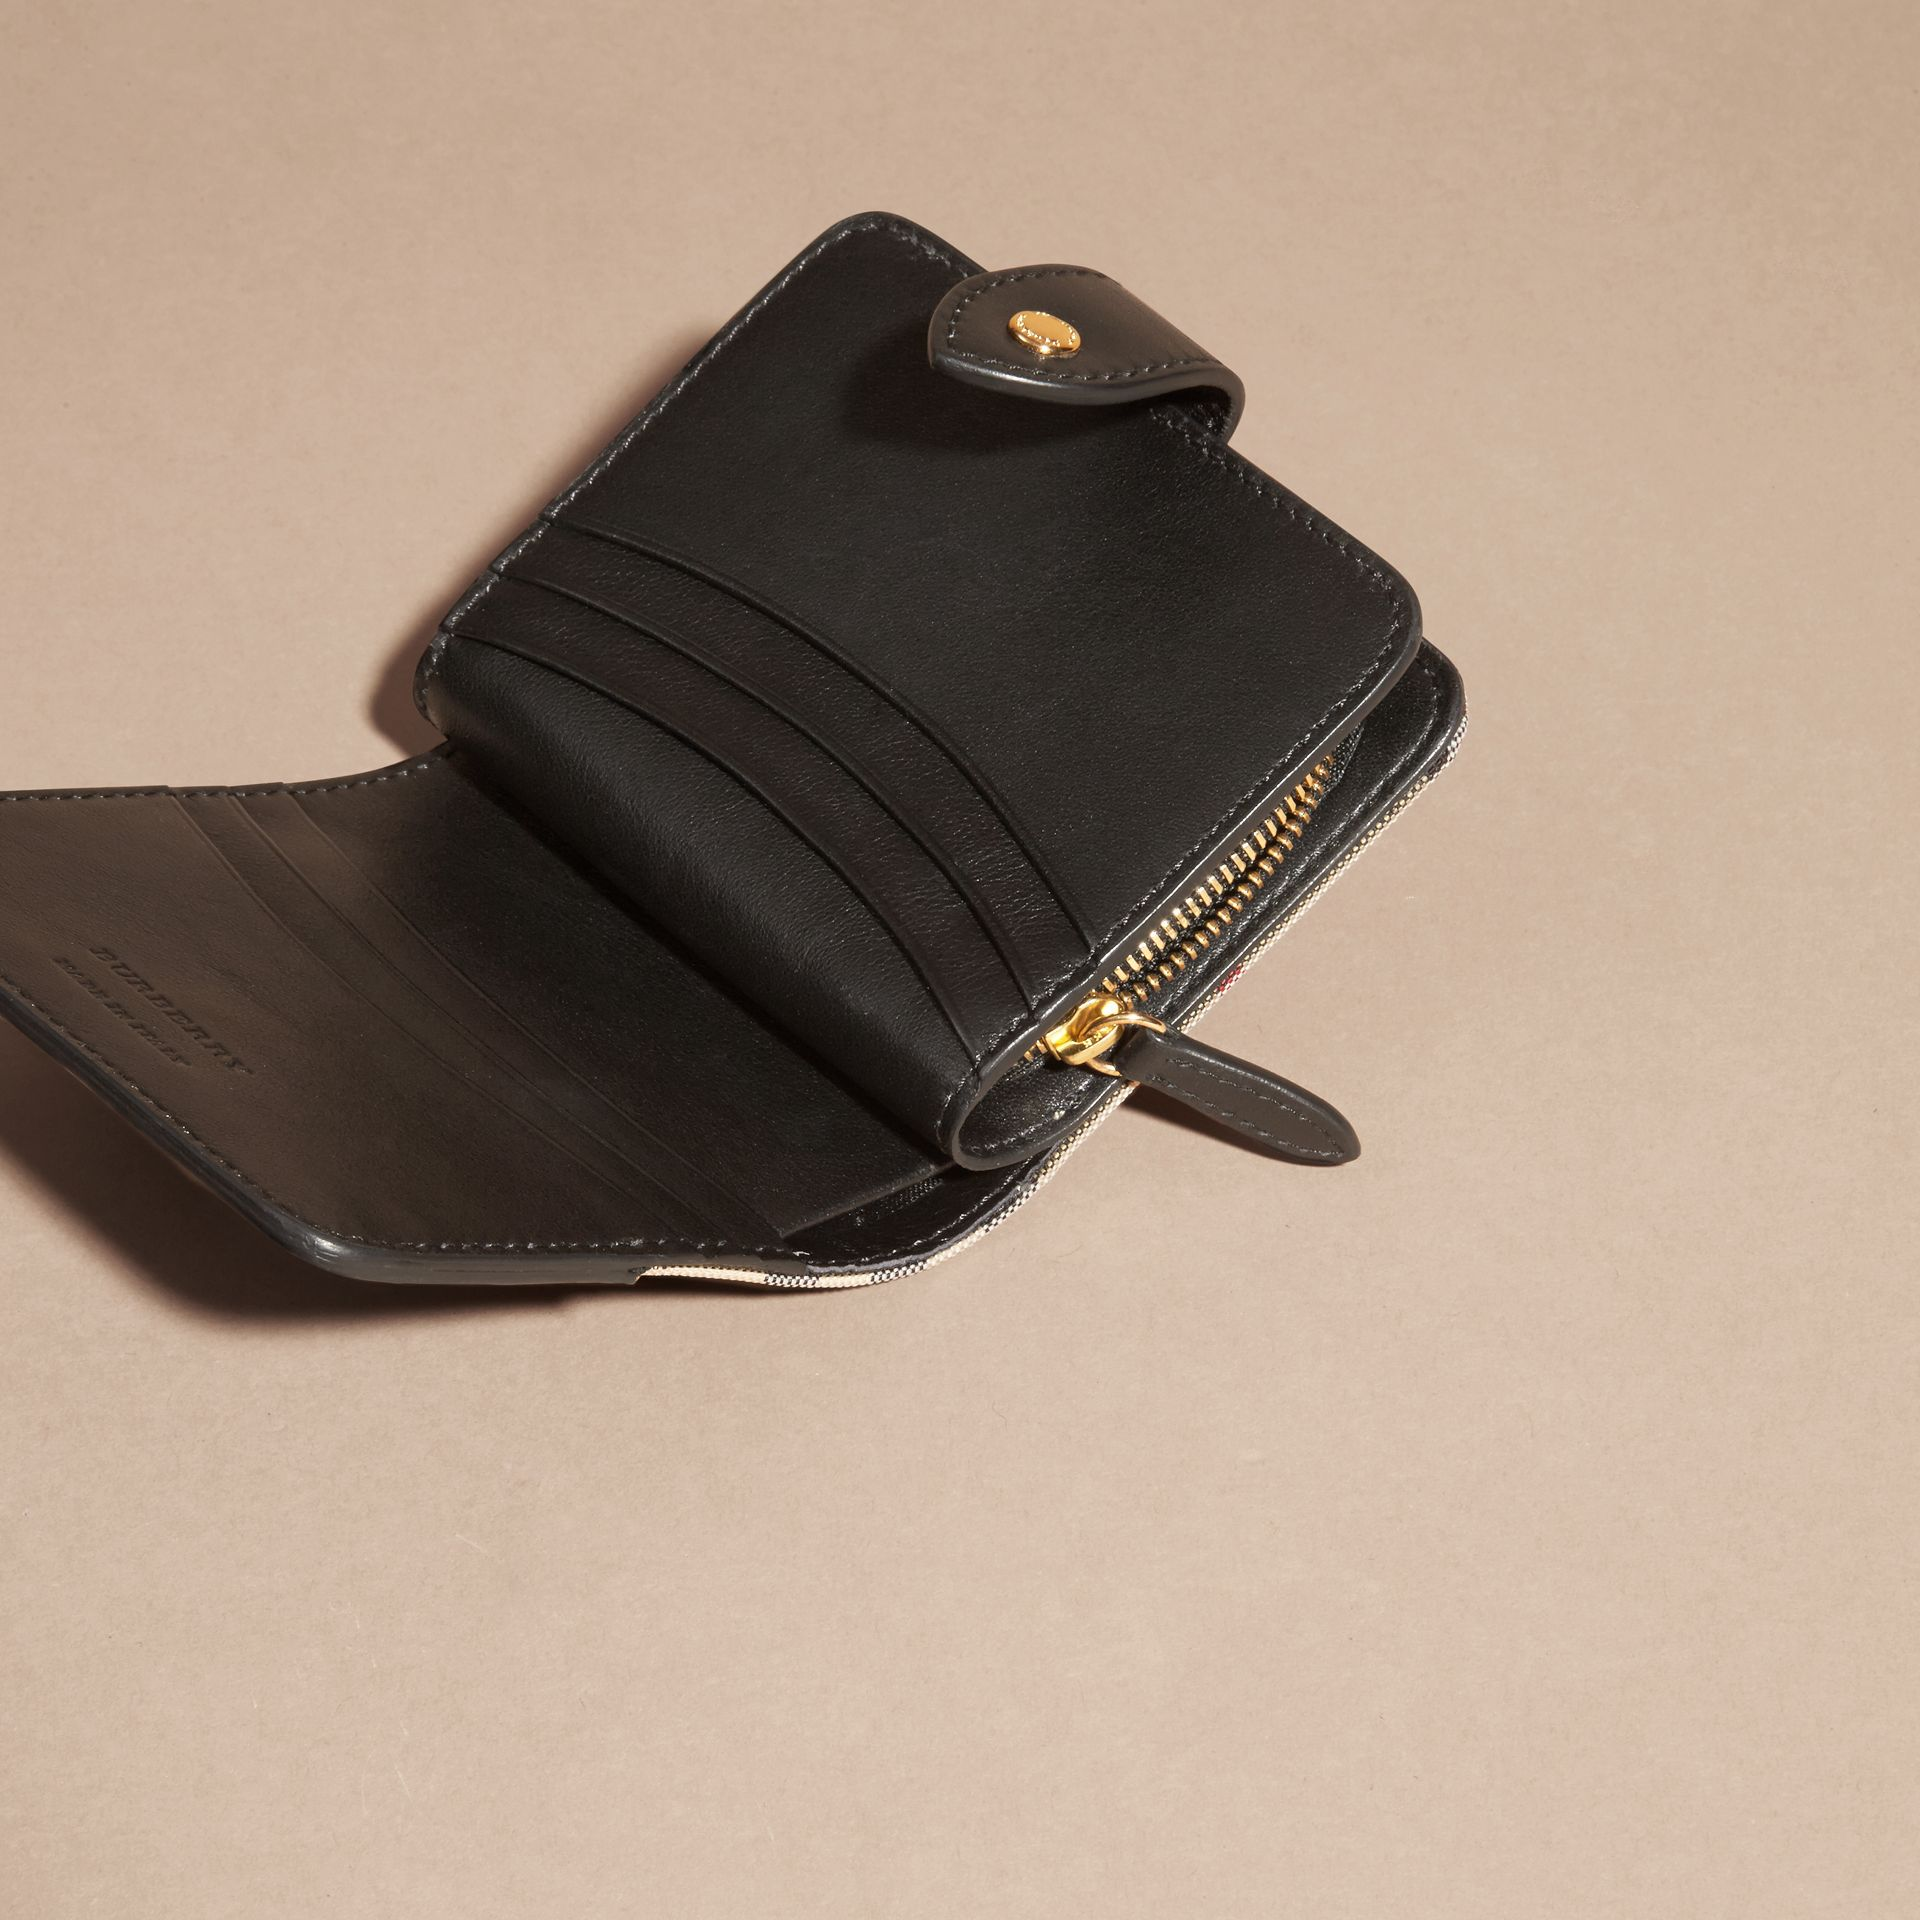 Horseferry Check and Leather Wallet Black - gallery image 9